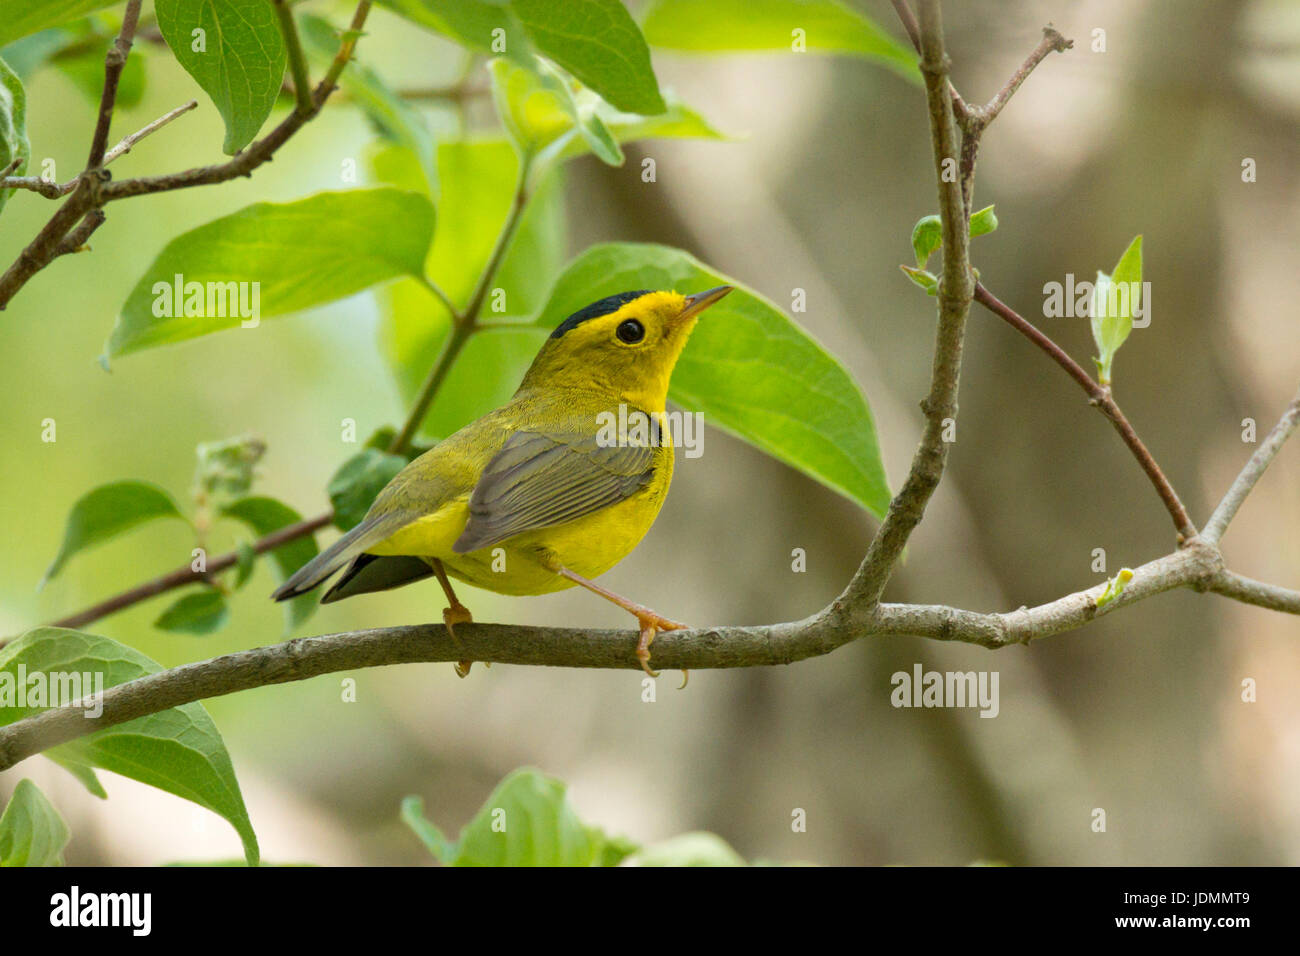 Wilson's Warbler breeding male poses on leafy branch at Magee Marsh Wildlife Area, Ohio - Stock Image